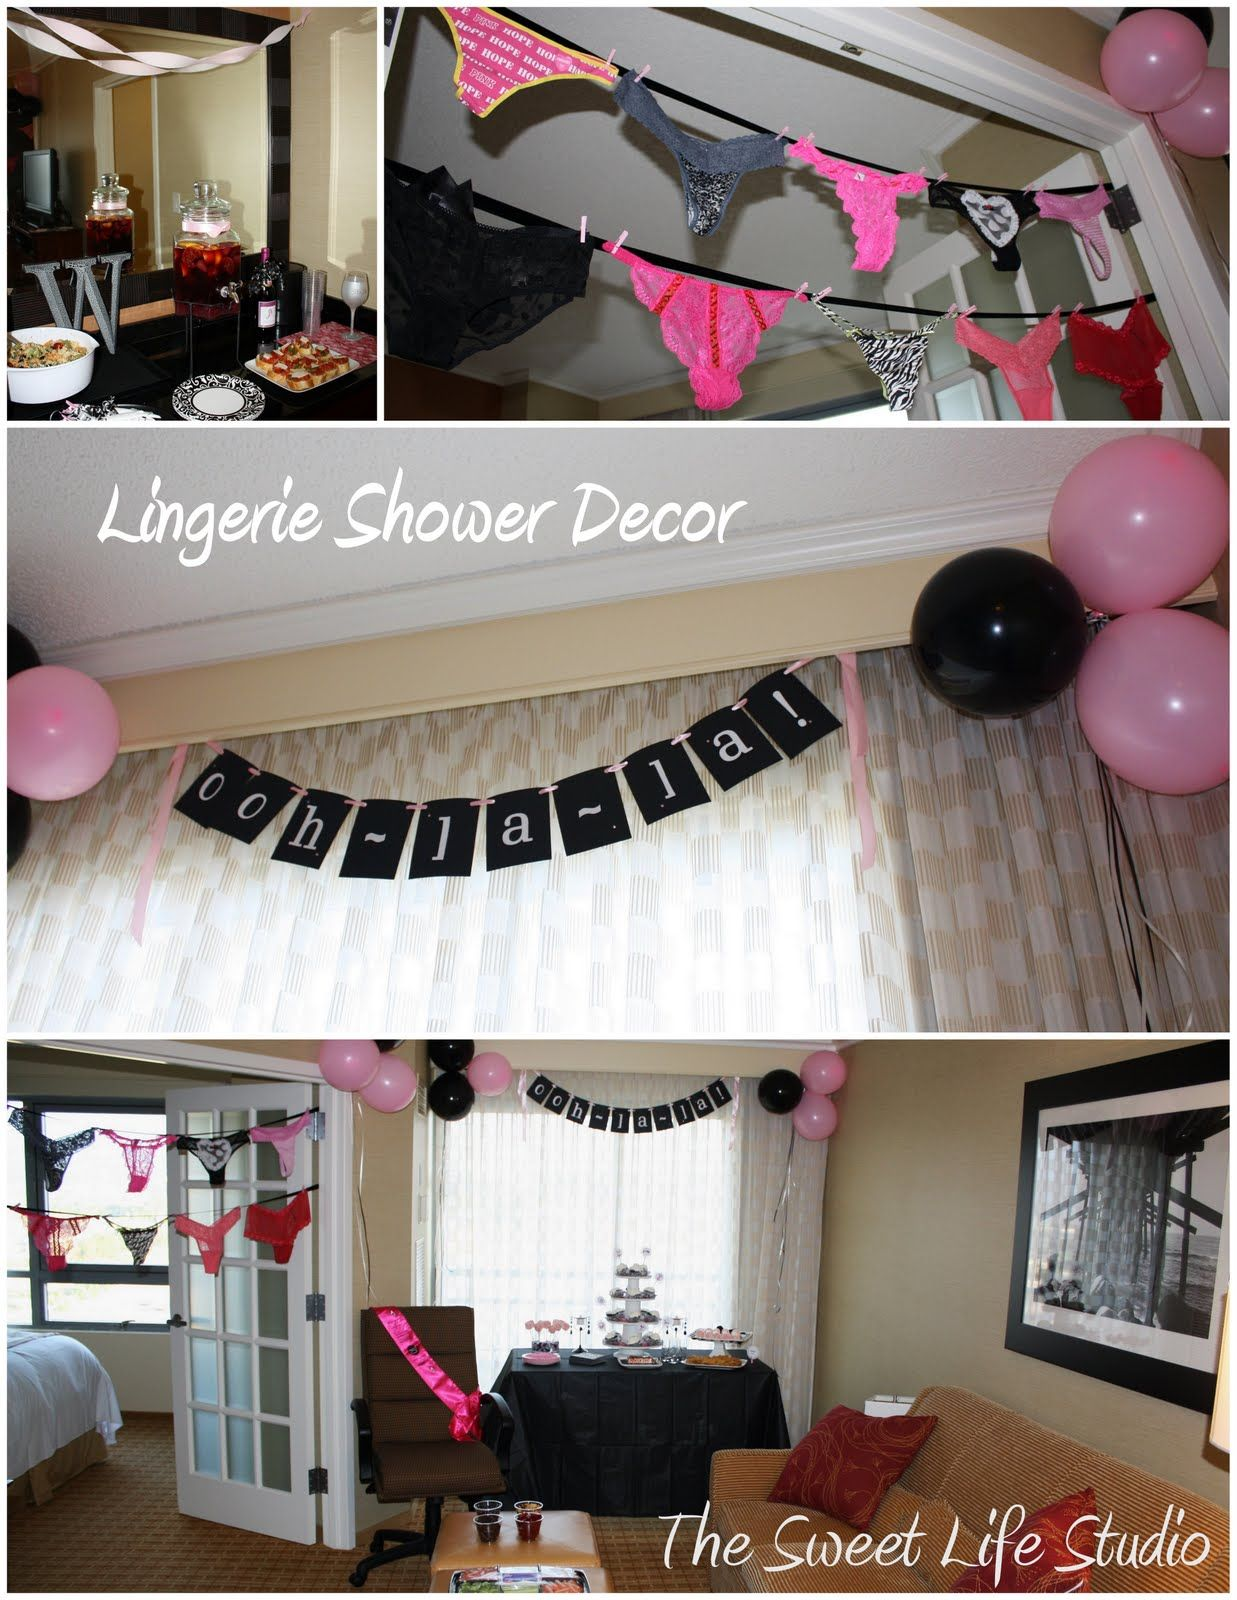 lingerie shower decorations got to use many of my gifts to the bride as decor so fun